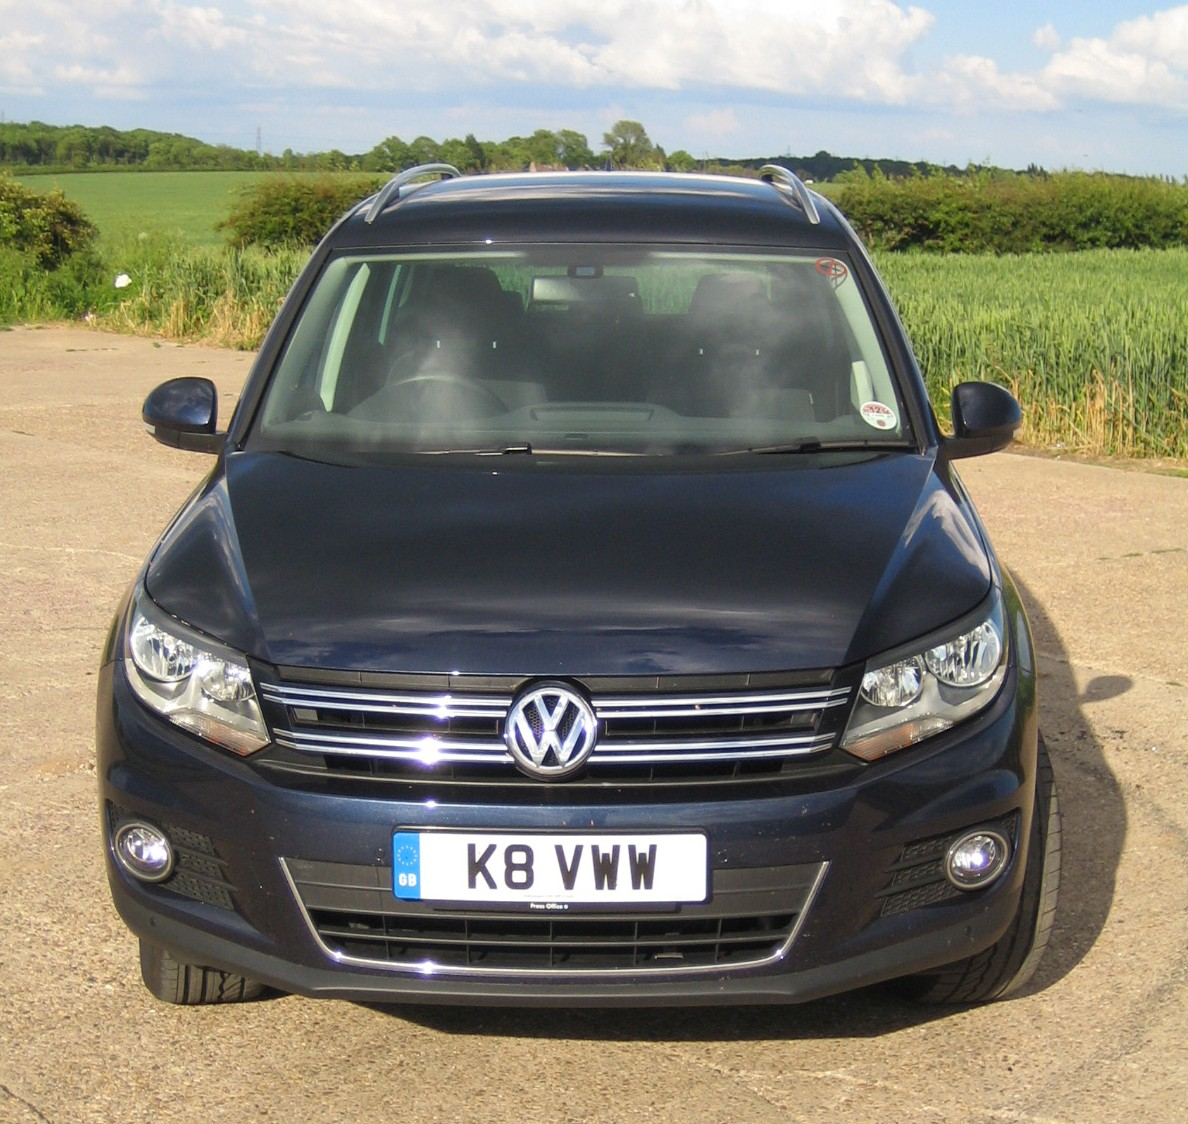 Volkswagen Tiguan Match 2.0 TDI review & road test report